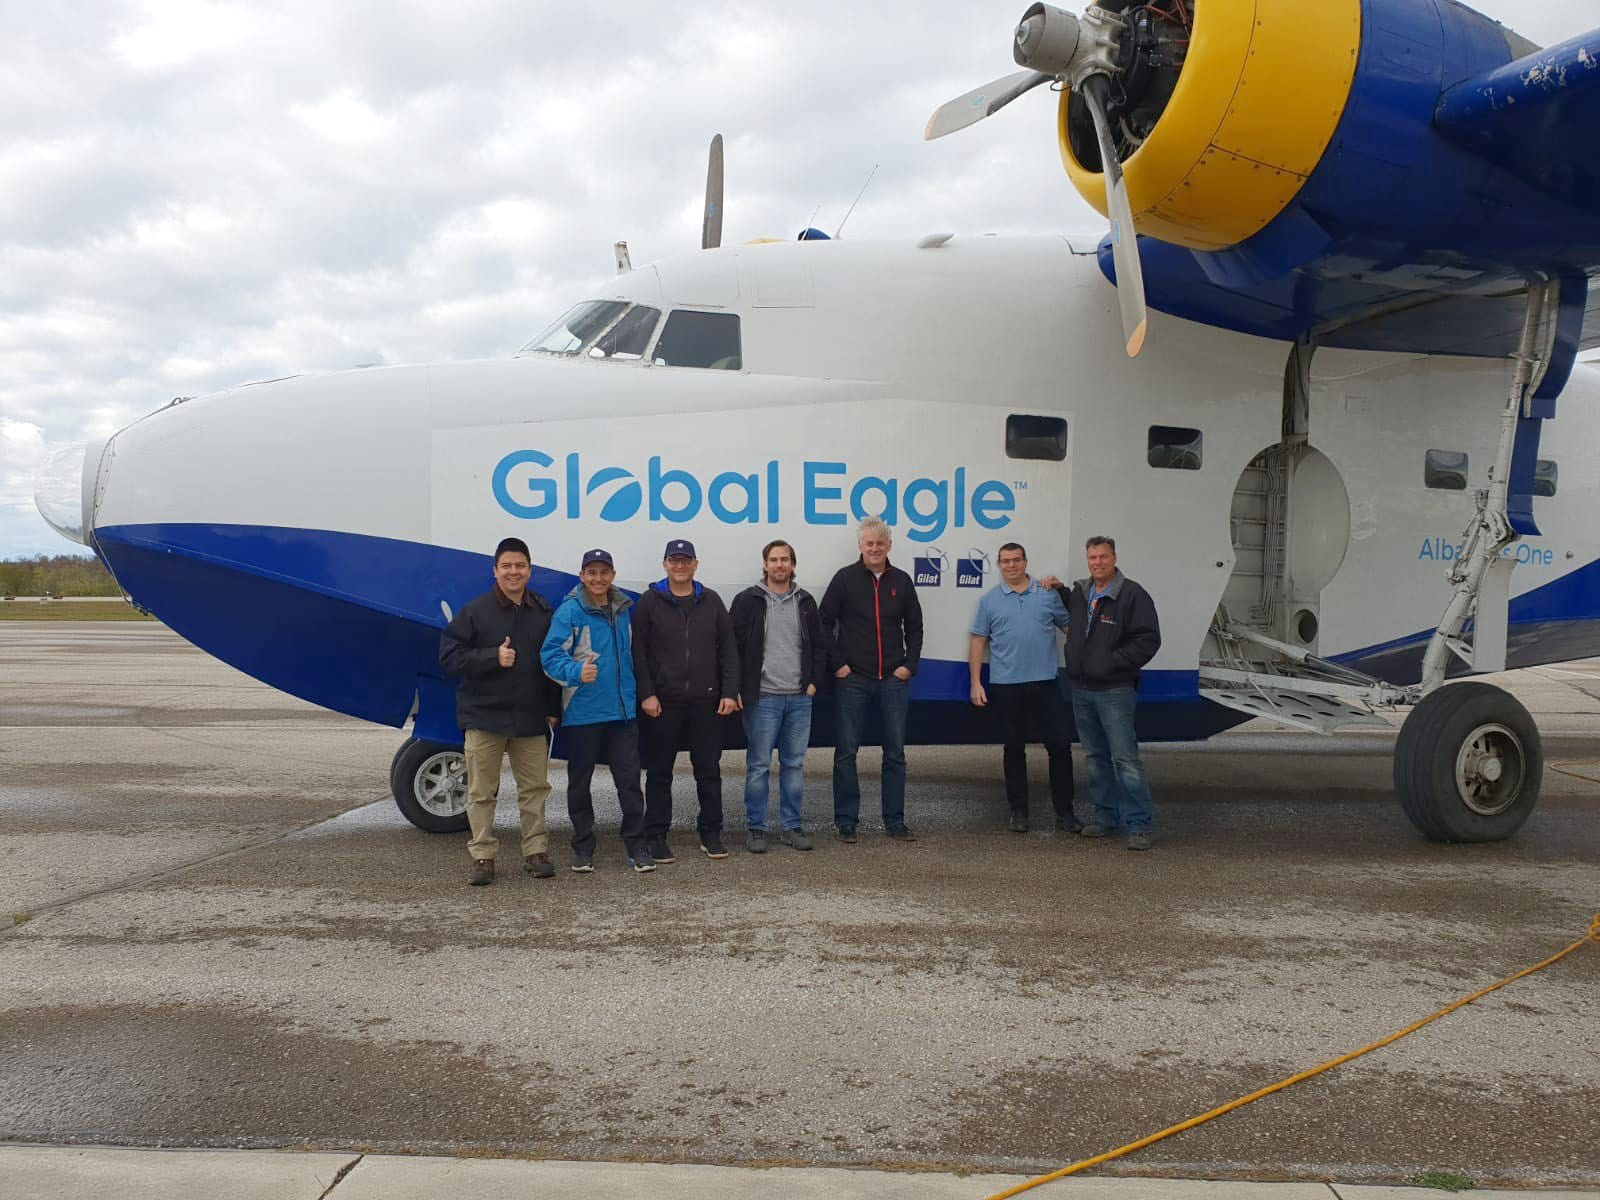 Global Eagle and Gilat Use Telesat's Phase 1 LEO Satellite to Demonstrate First Ever,  Live In-flight Broadband Connectivity via LEO